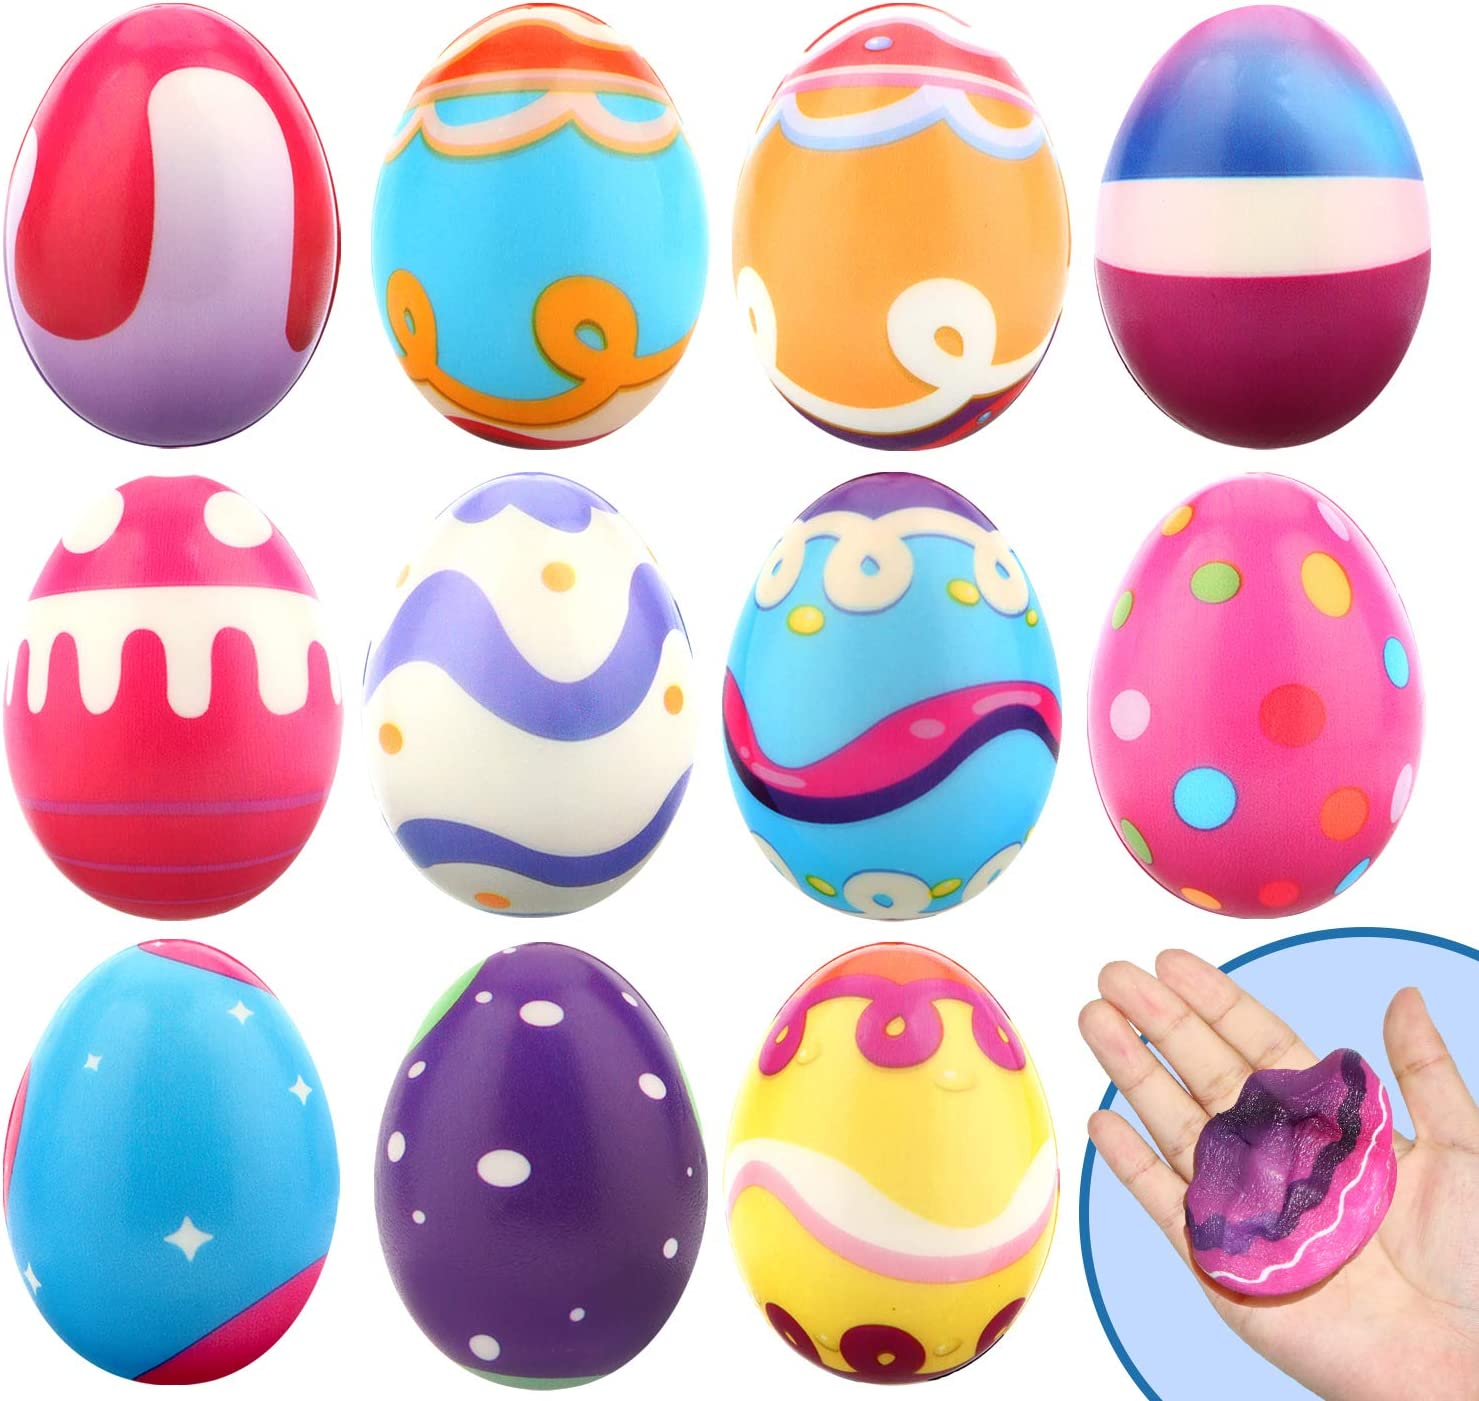 12 Packs Easter Basket Stuffers Squishy Toys, Slow Rising Squishy Easter Eggs, Party Favor Gifts for Easter